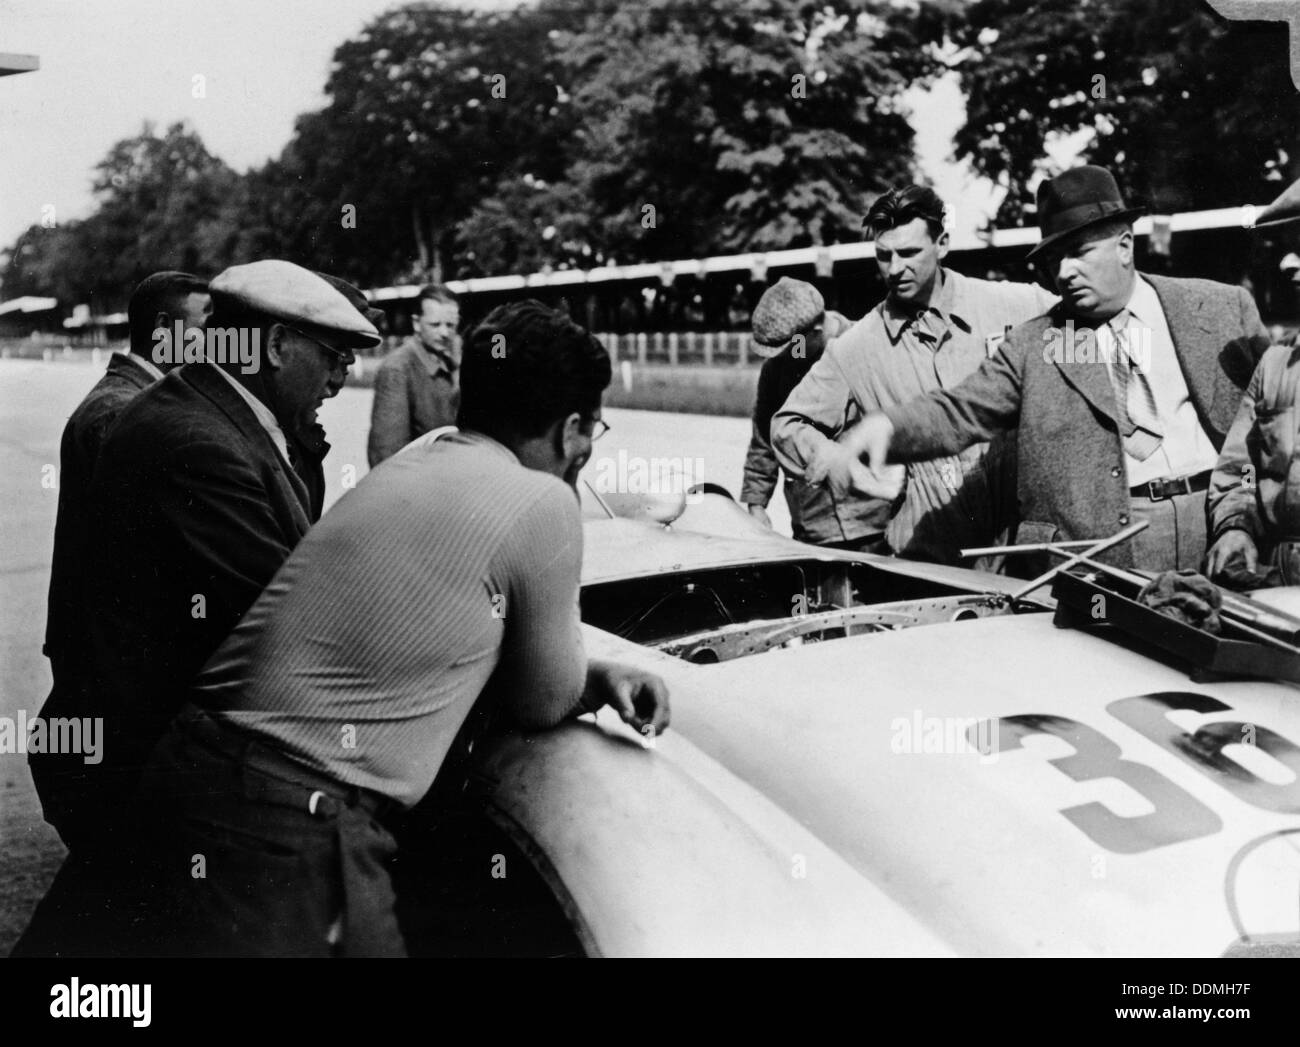 Alfred Neubauer with a Mercedes, Avus motor racing circuit, Berlin, Germany, 1938. - Stock Image